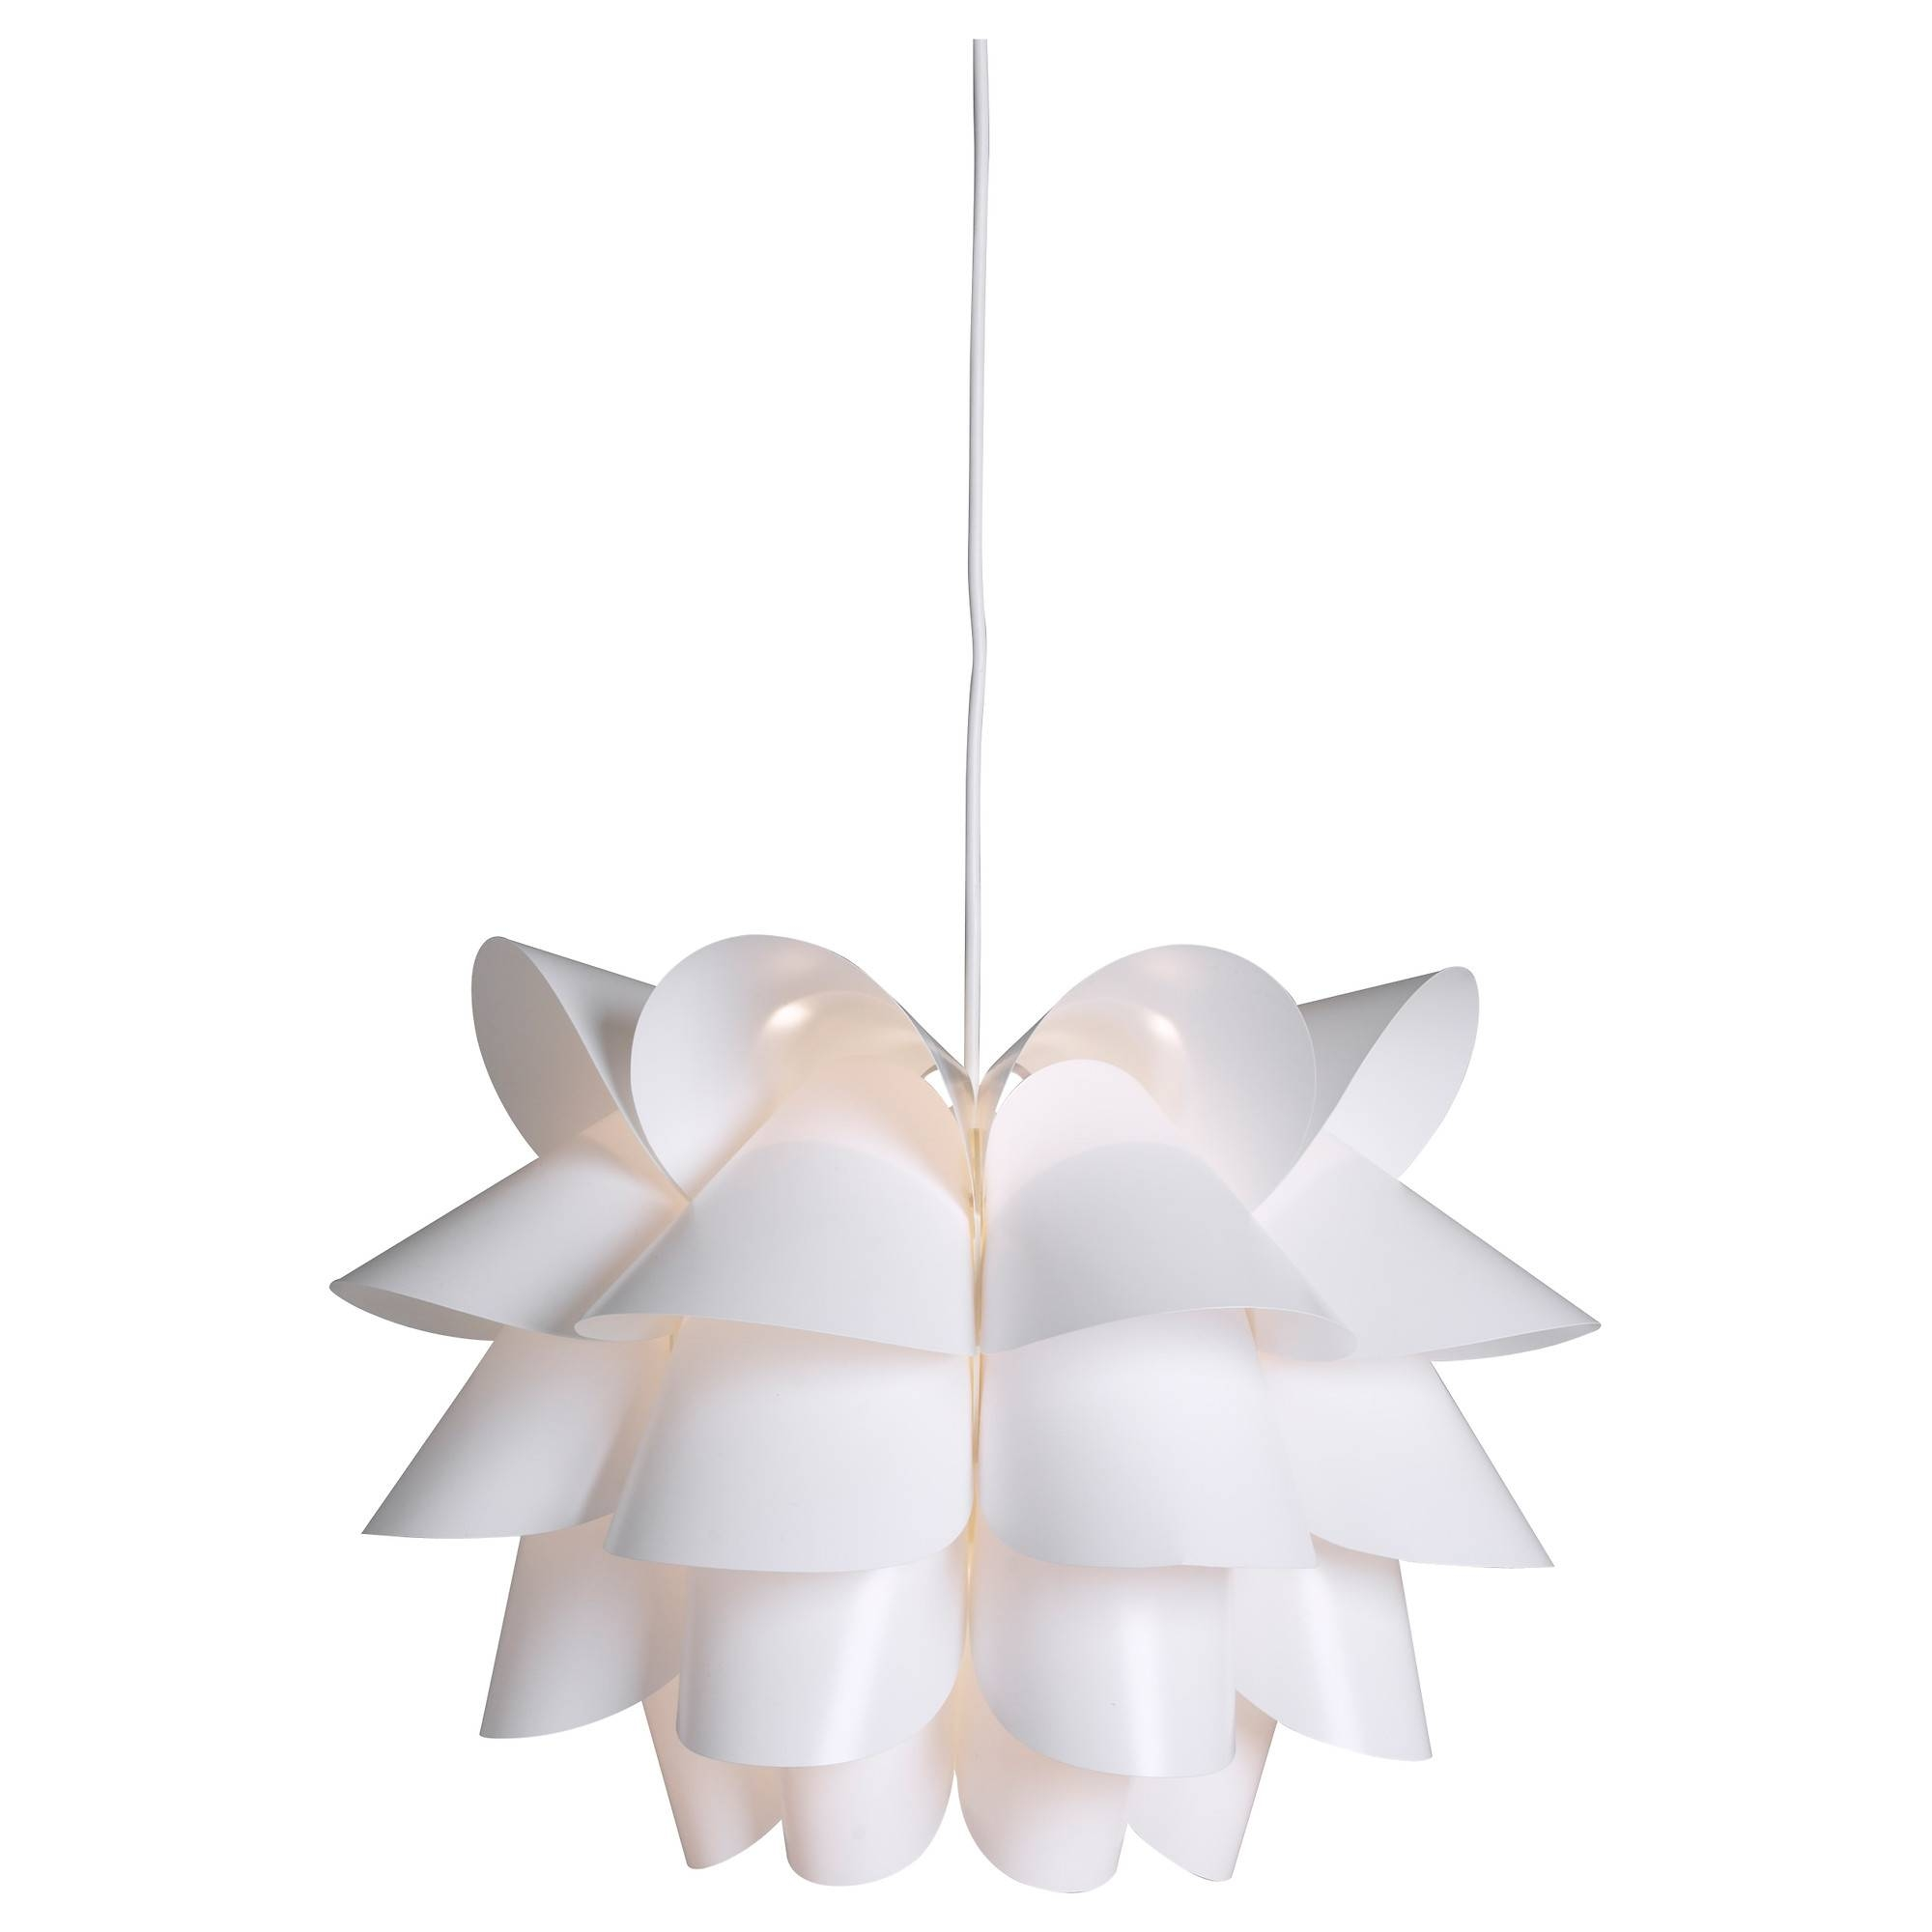 Knappa Pendant Lamp White - Ikea with regard to Ikea Pendant Lights Fixtures (Image 14 of 15)